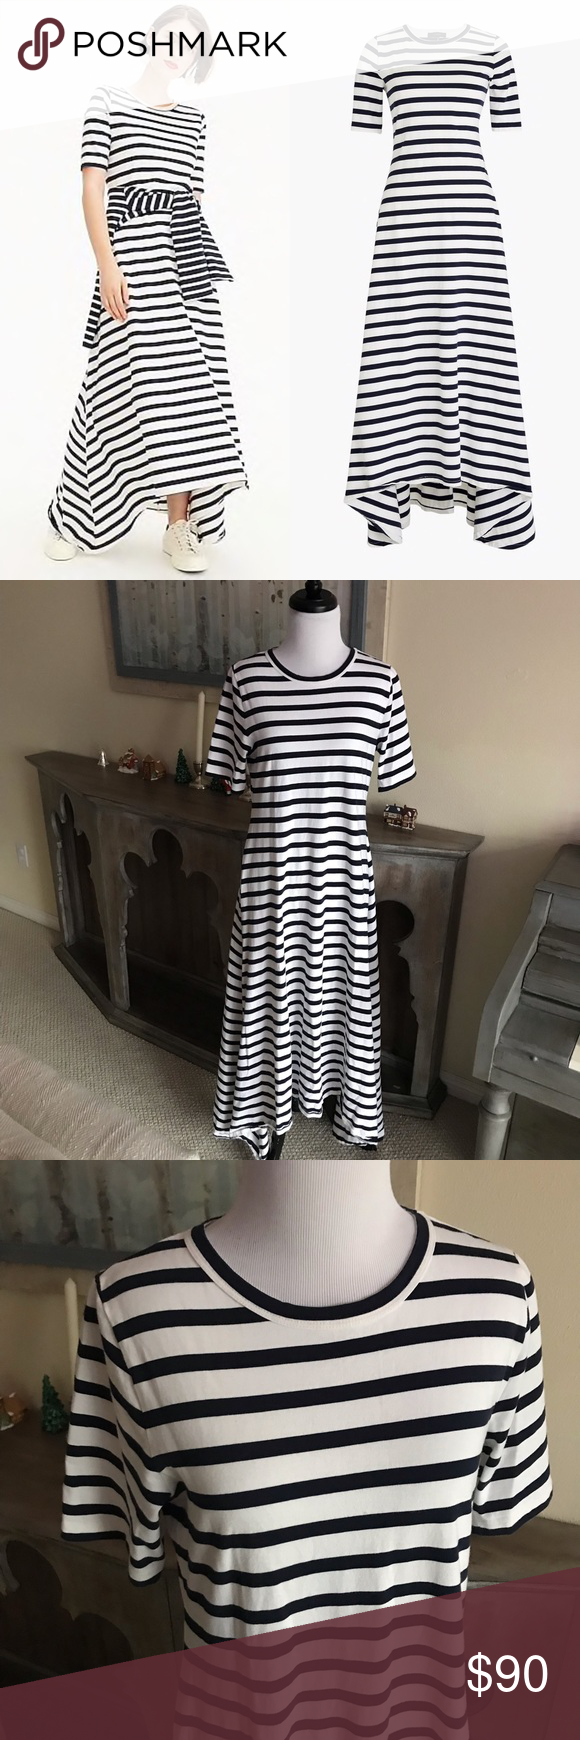 fd12a503f65 J. Crew • Striped Knit Maxi Dress Black   White • J. Crew • Striped Knit  Maxi Dress Black   White A short sleeve stripe maxi dress completes your  next ...